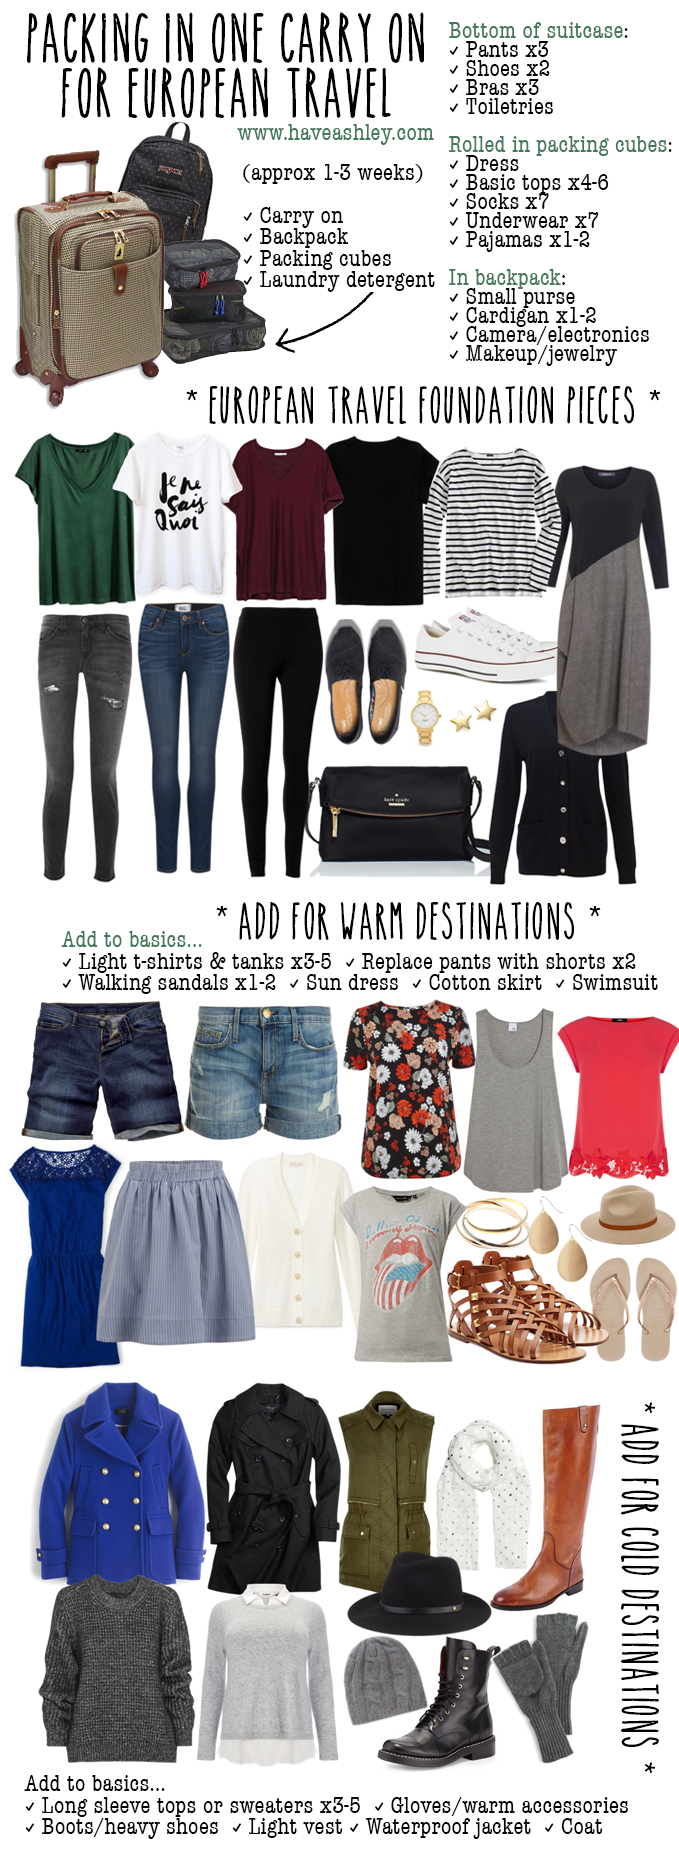 3-in-1 Vacation Basics